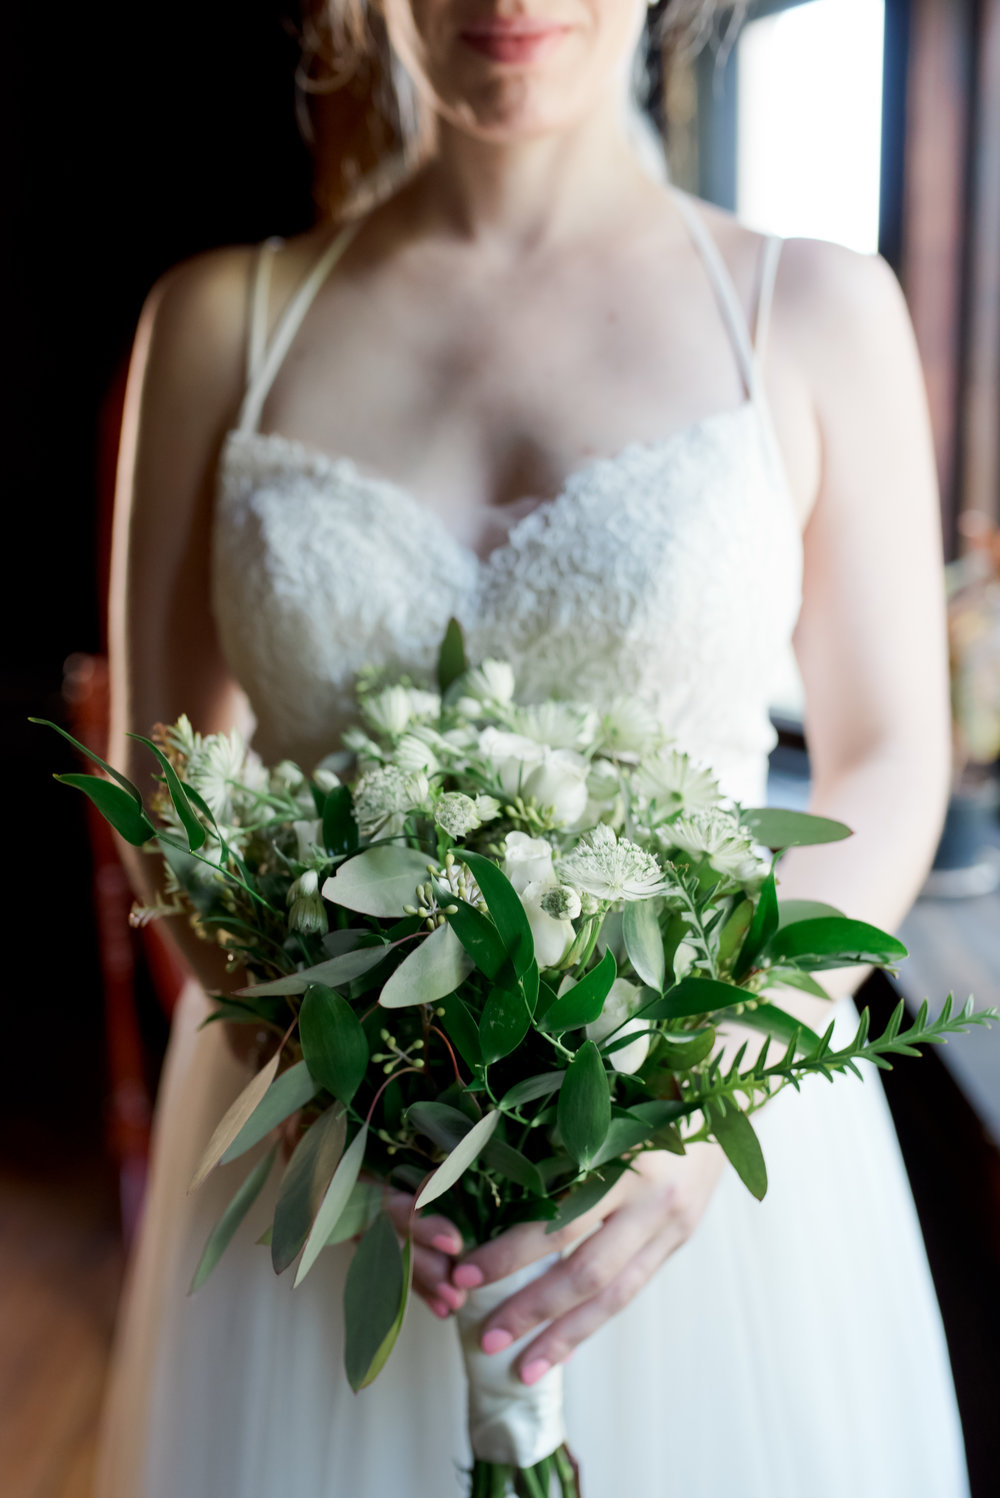 BrooklynSocietyforEthicalCultureWedding012.jpg